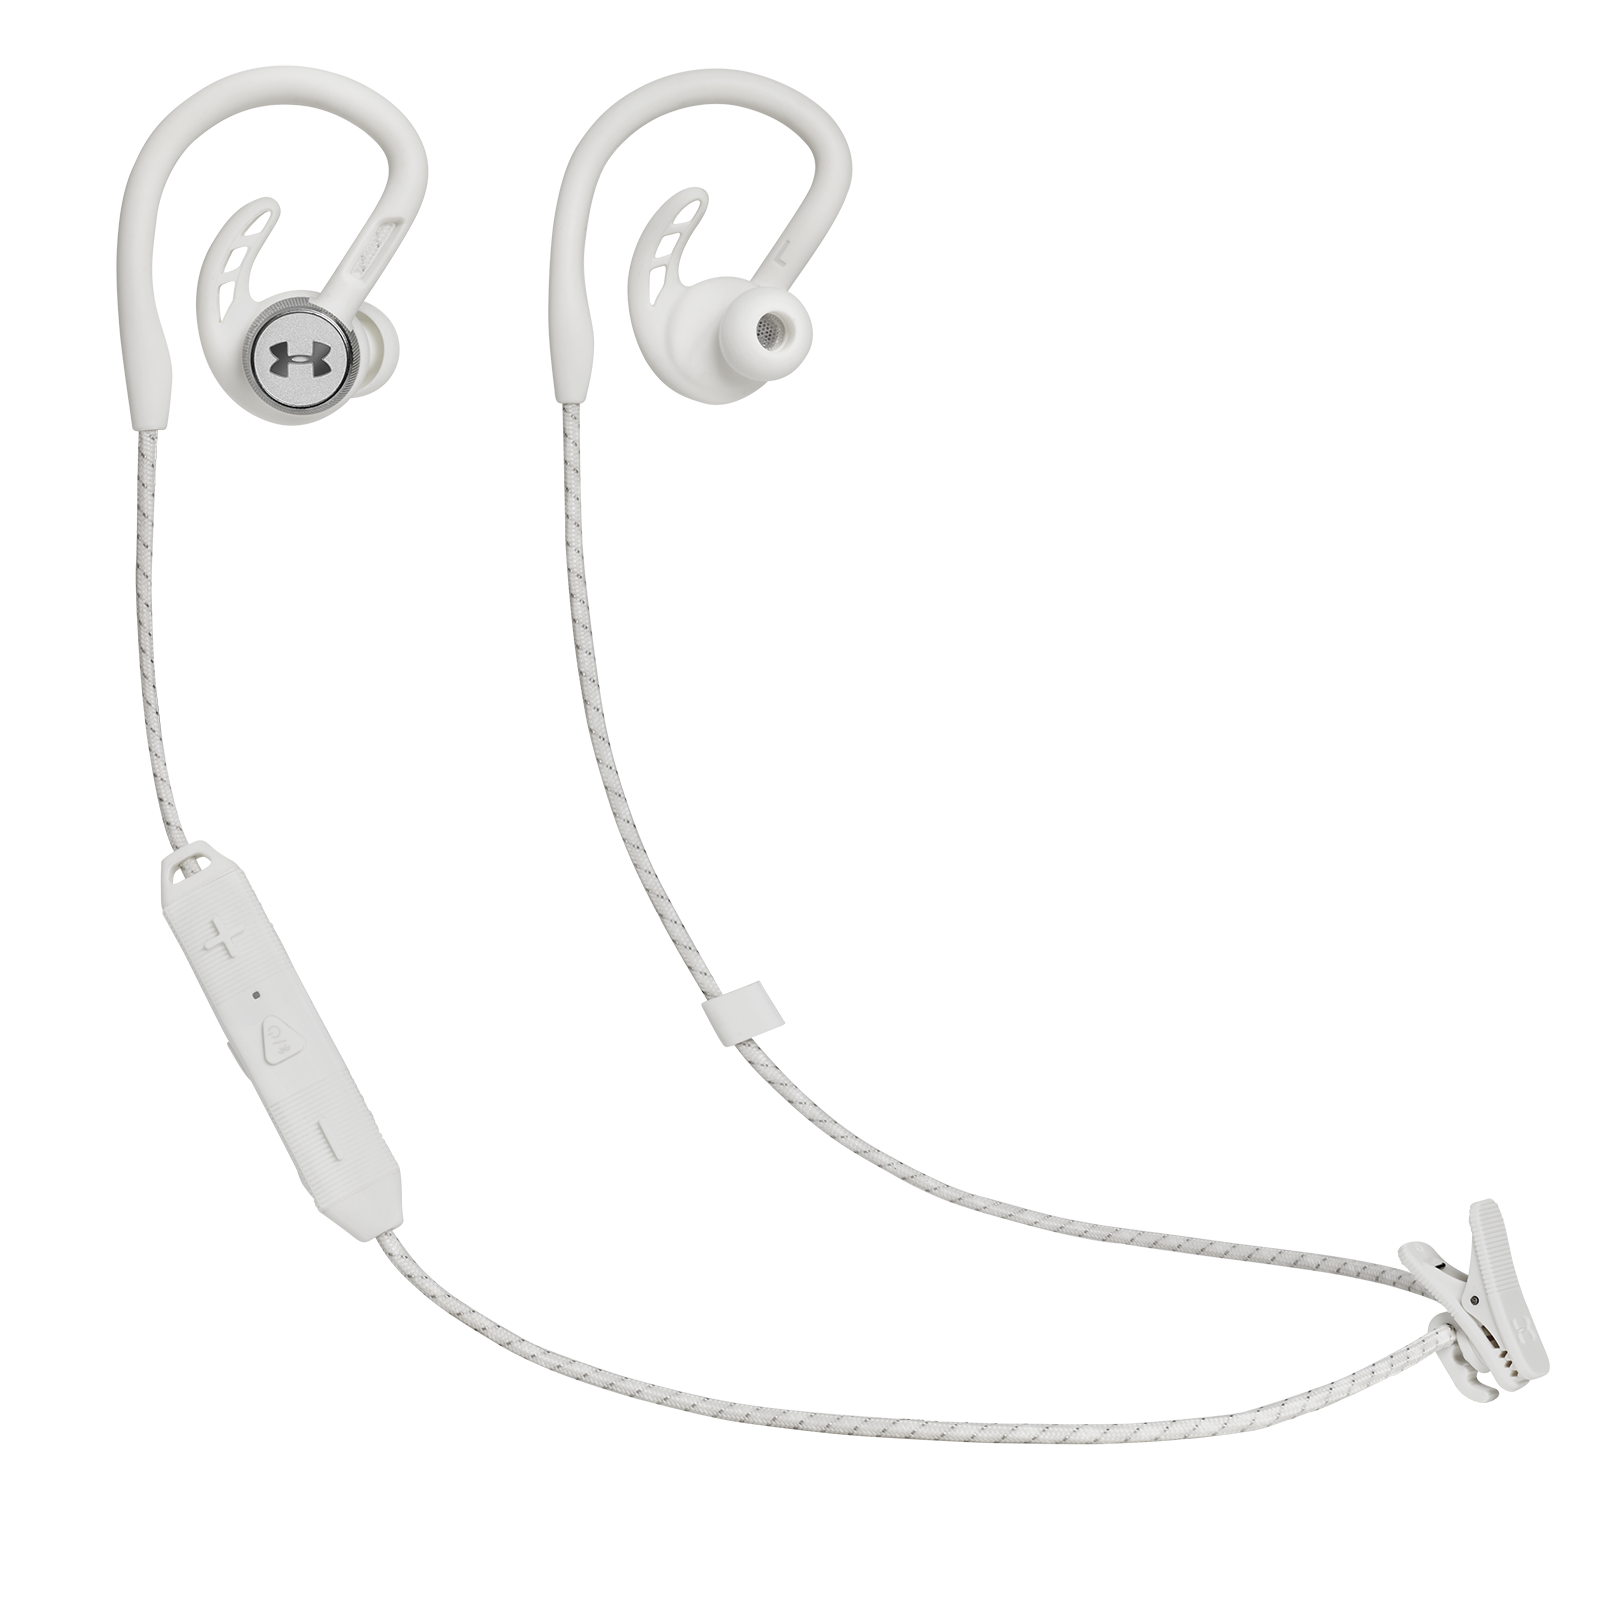 UA Sport Wireless PIVOT - White - Secure-fitting wireless sport earphones with JBL technology and sound - Hero